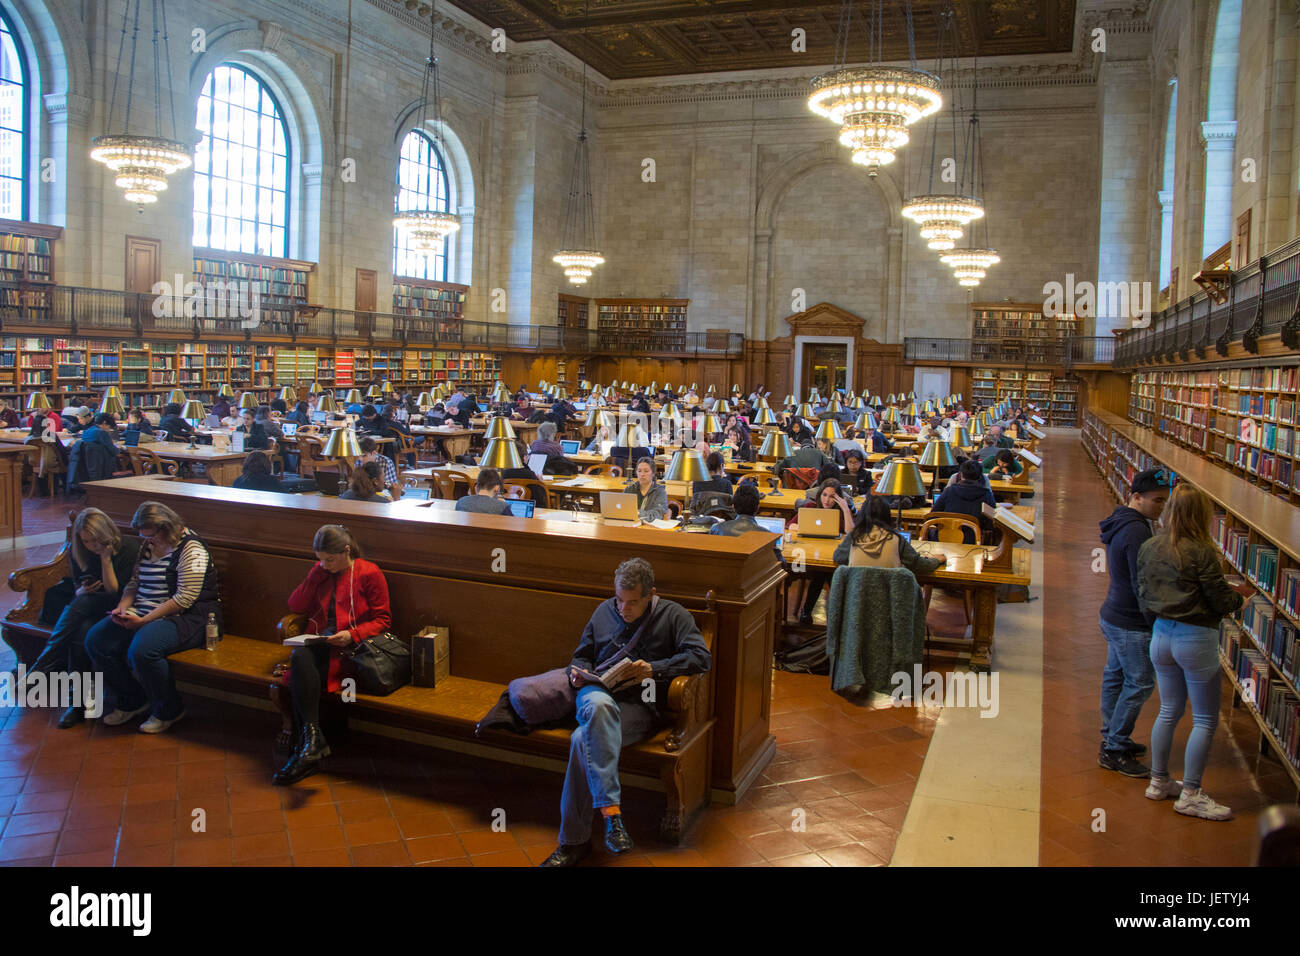 Reading Room, New York Public Library, Stephen A. Schwarzman Building, New York CIty, USA - Stock Image